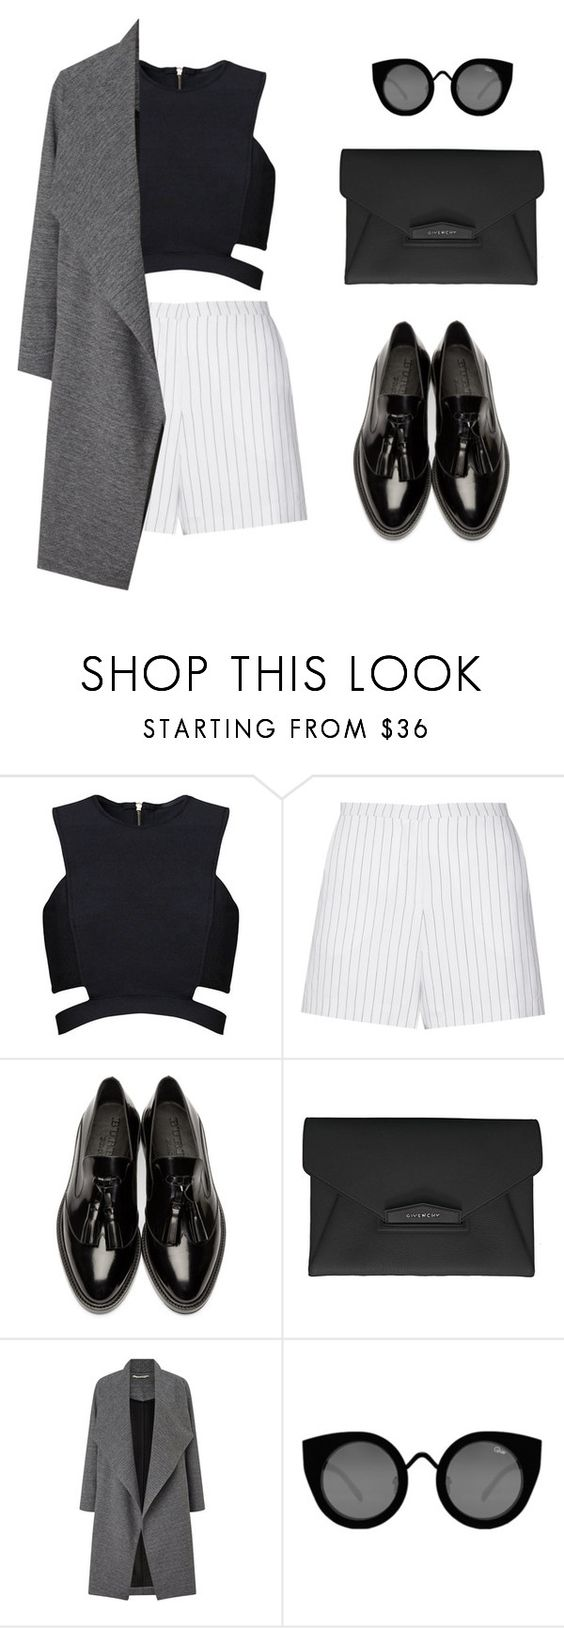 """Minimal #2"" by amlhrs ❤ liked on Polyvore featuring moda, Posh Girl, Sandro, Burberry, Givenchy, Miss Selfridge, Quay y contemporary"